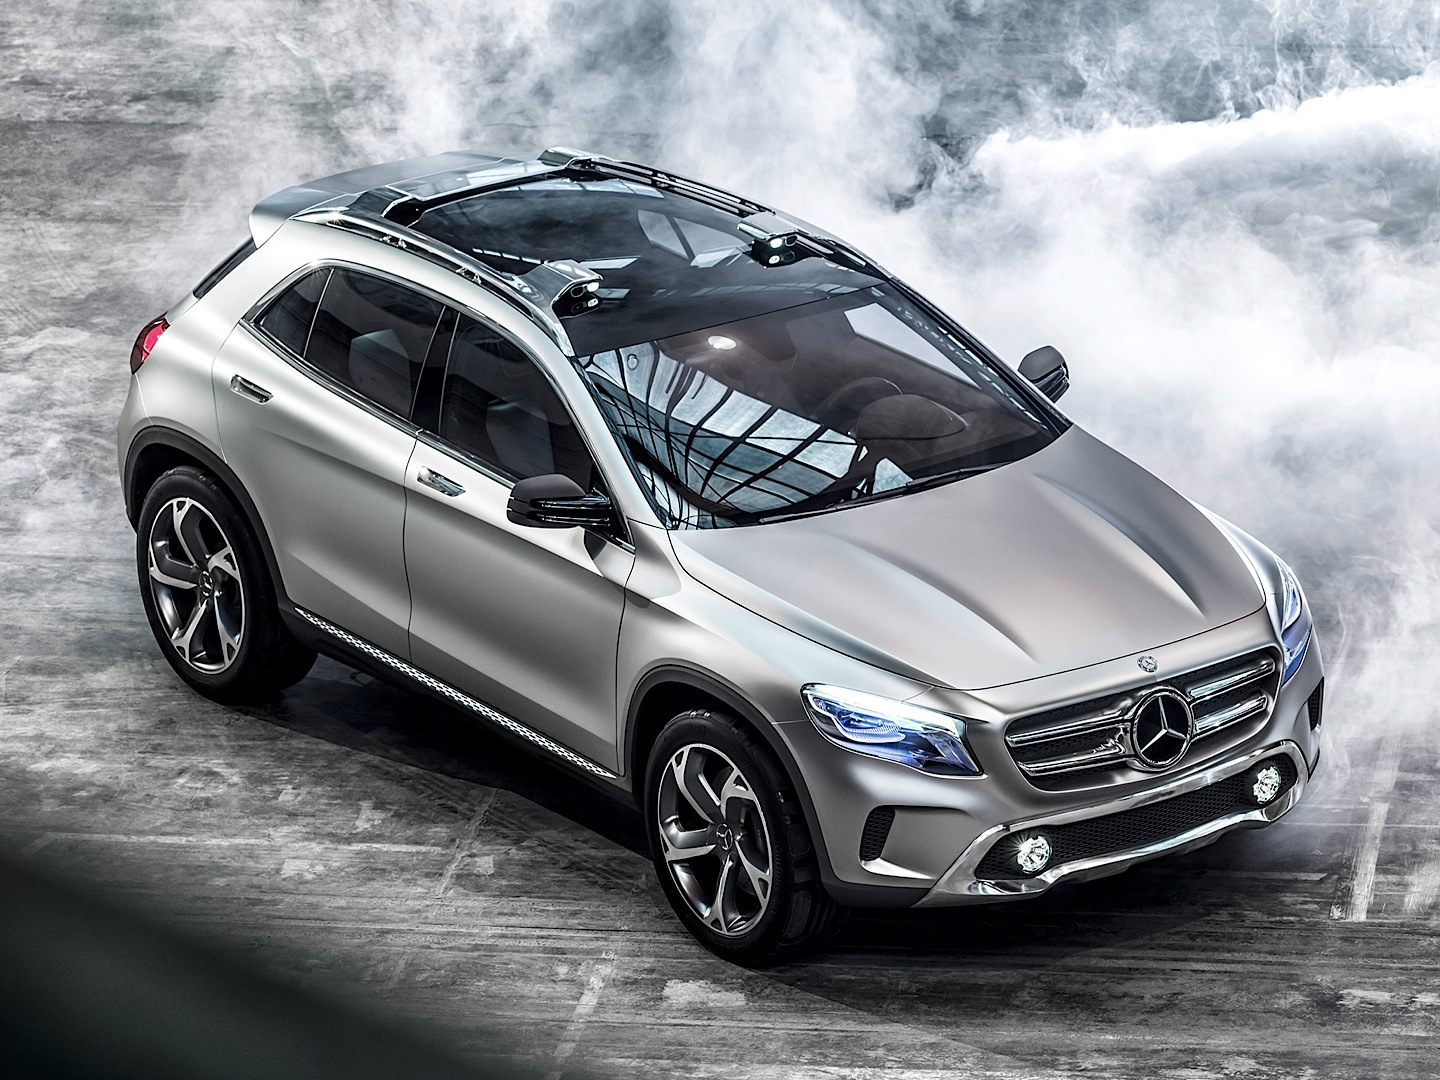 Mercedes Benz Gla Prices And Release Date Speculations In